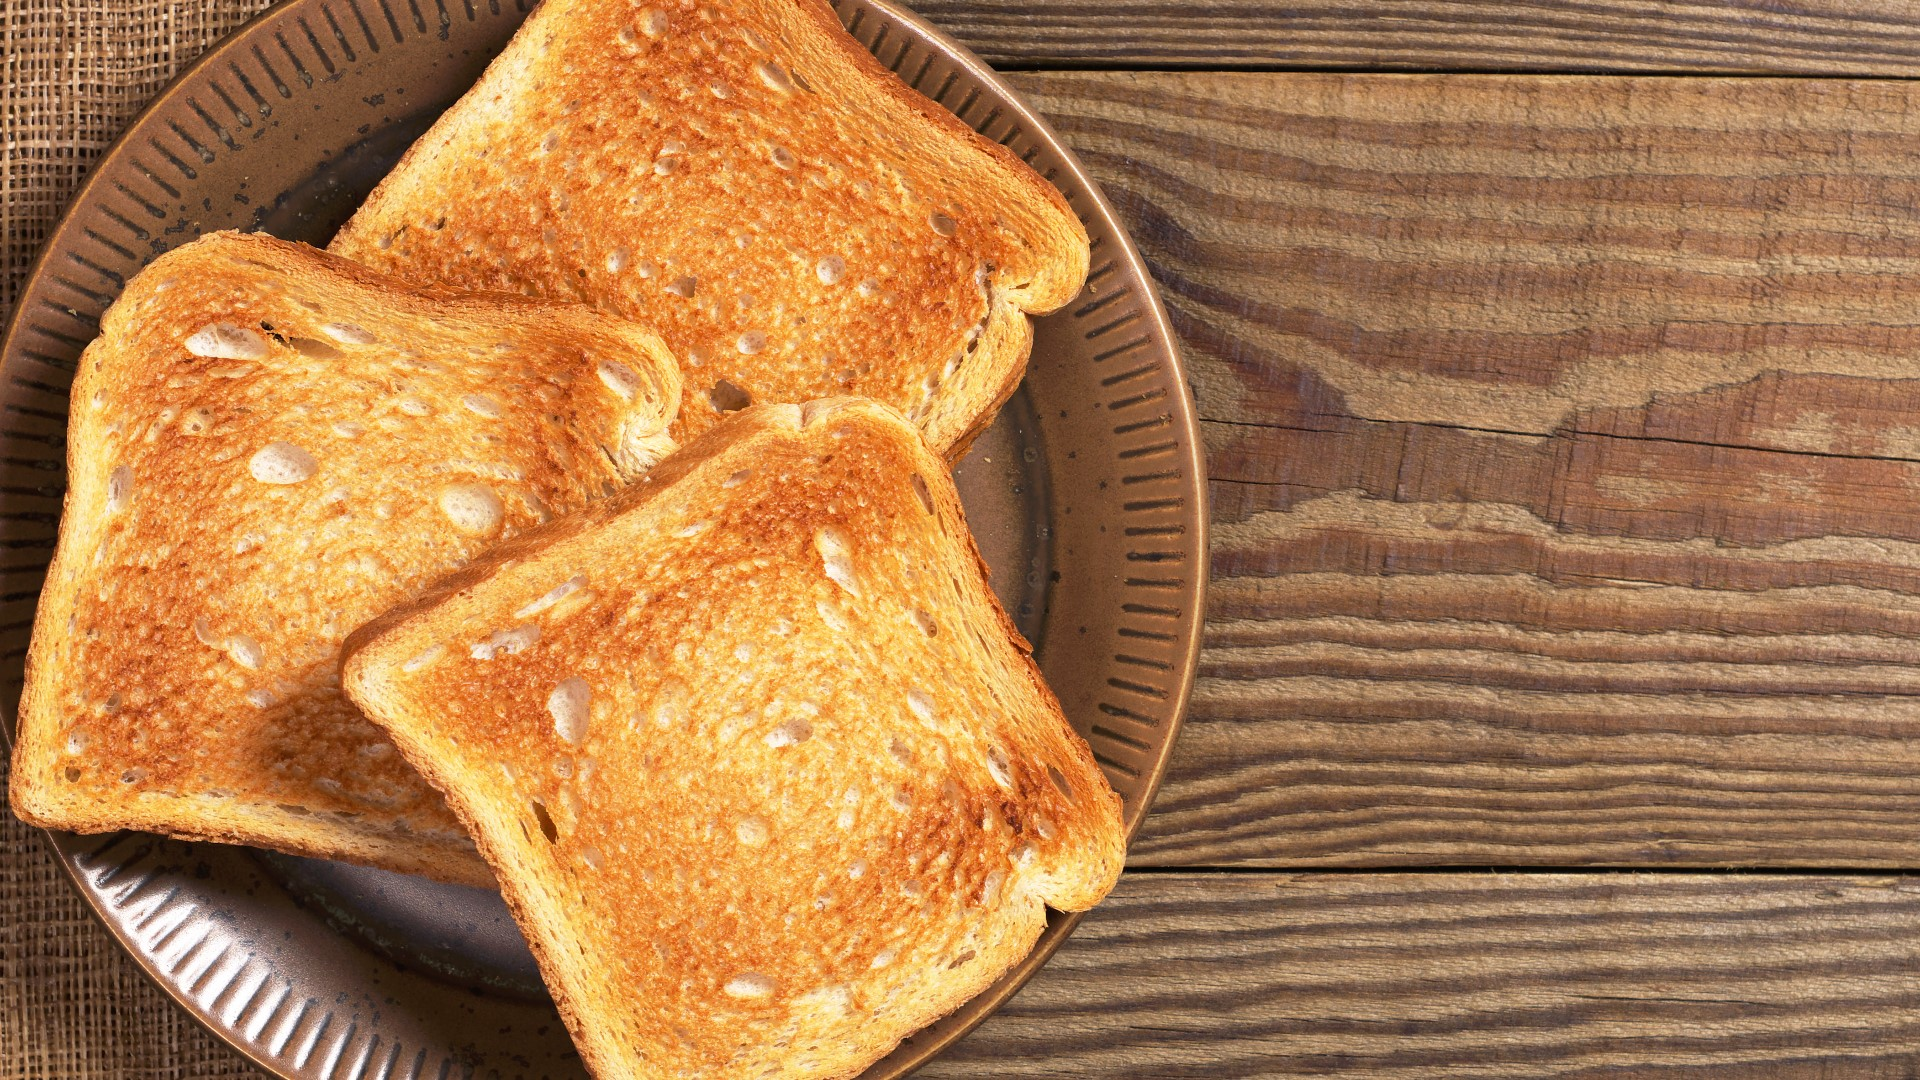 Nope! Verify: You won't lose weight by toasting bread | 13wmaz.com